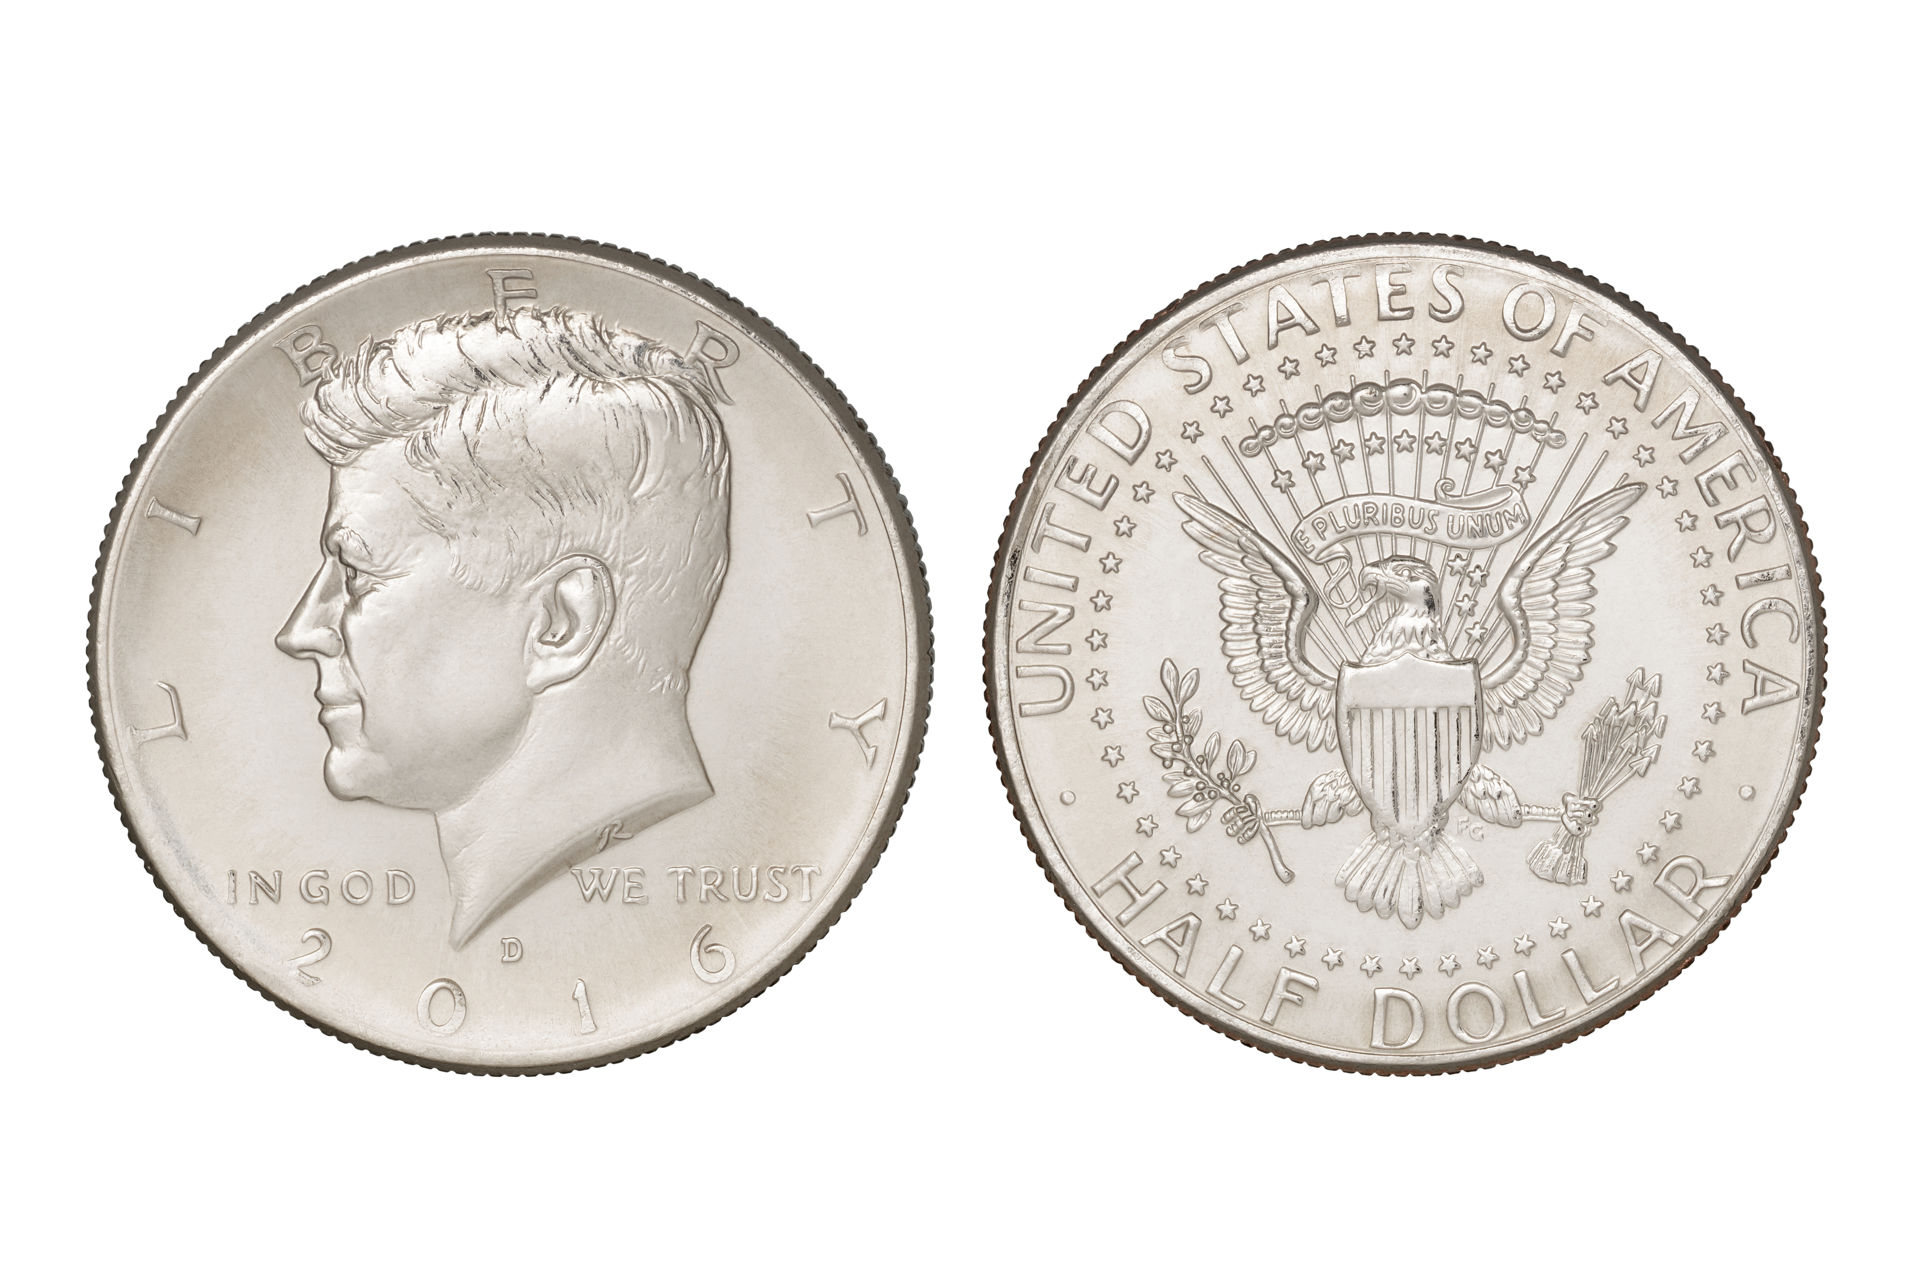 Half a Dollar: History and Value of the Coin